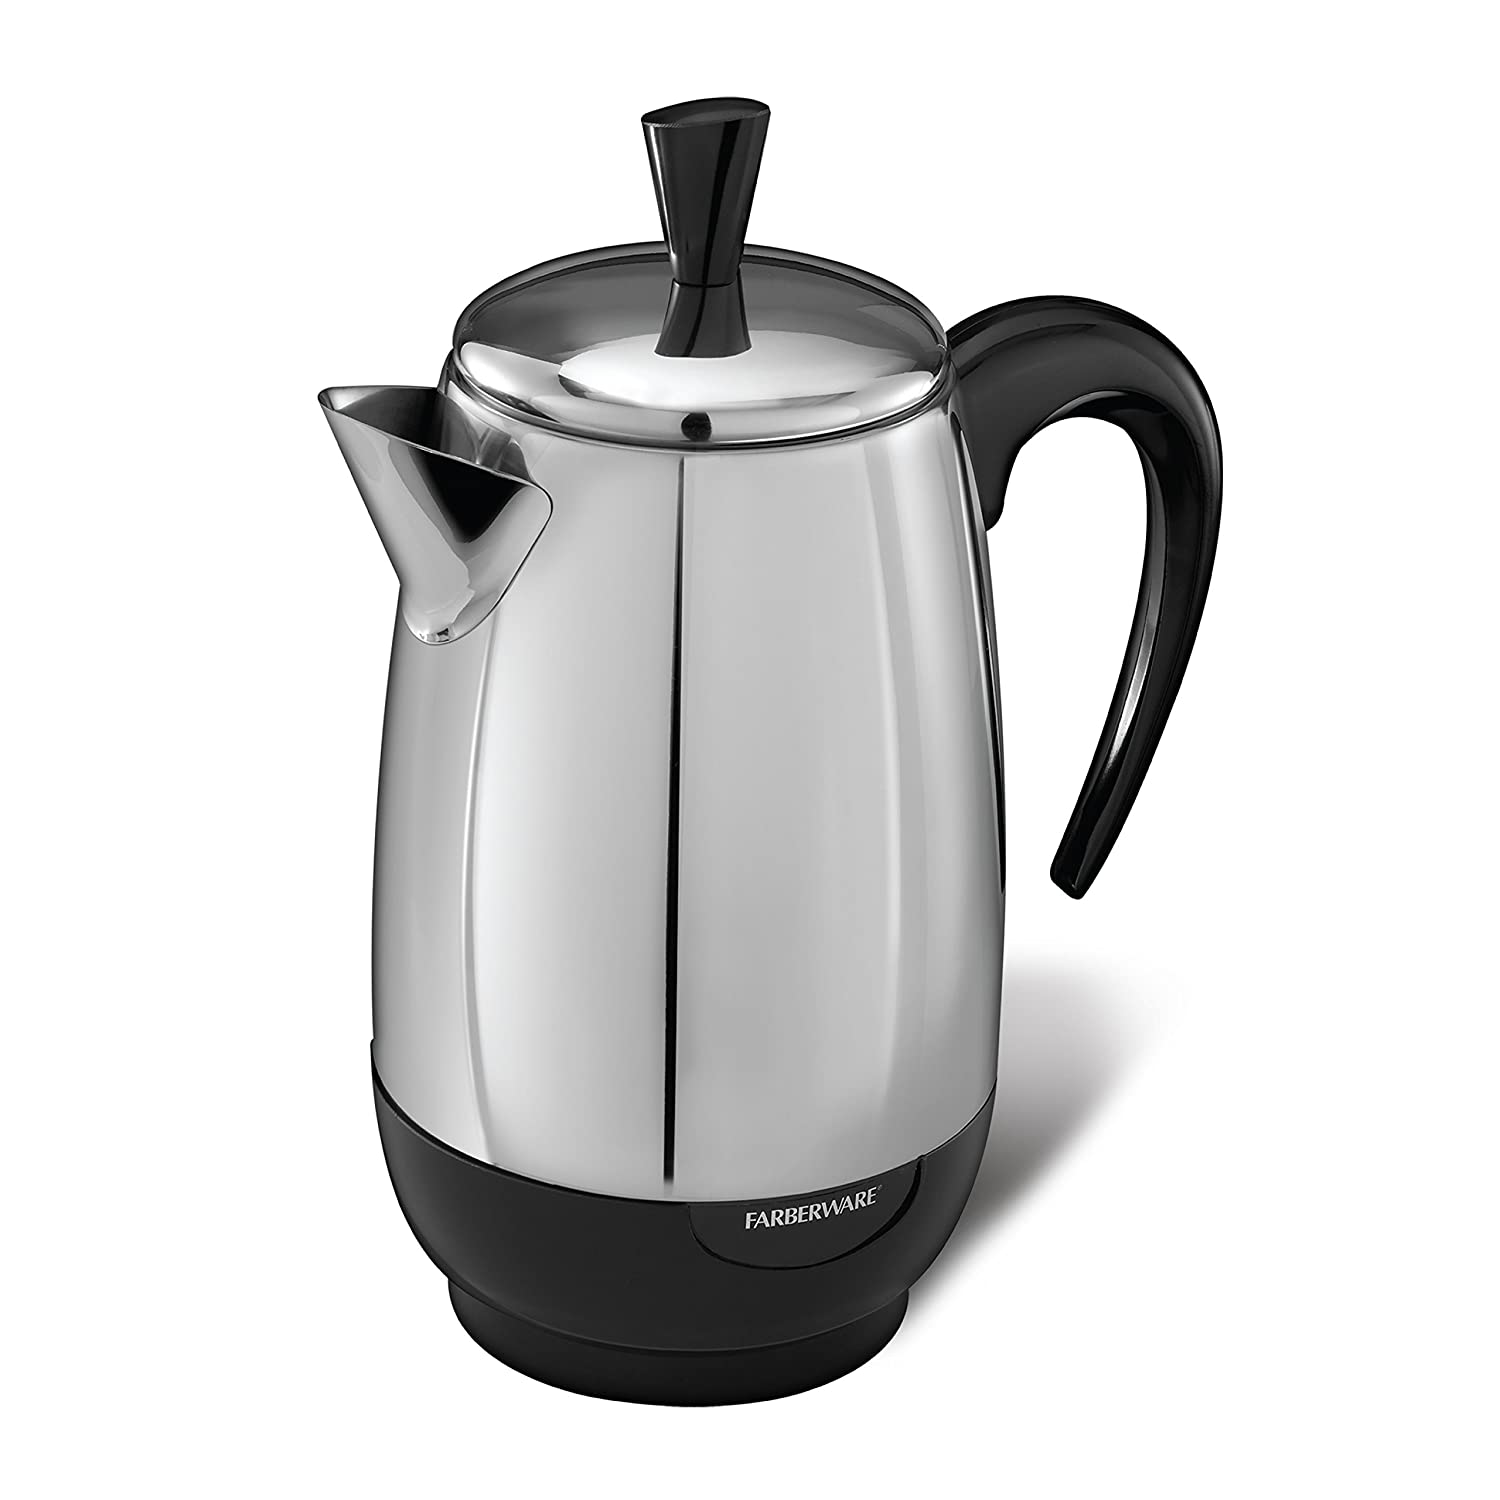 Spectrum Farberware 8-Cup Percolator, Stainless Steel, FCP280